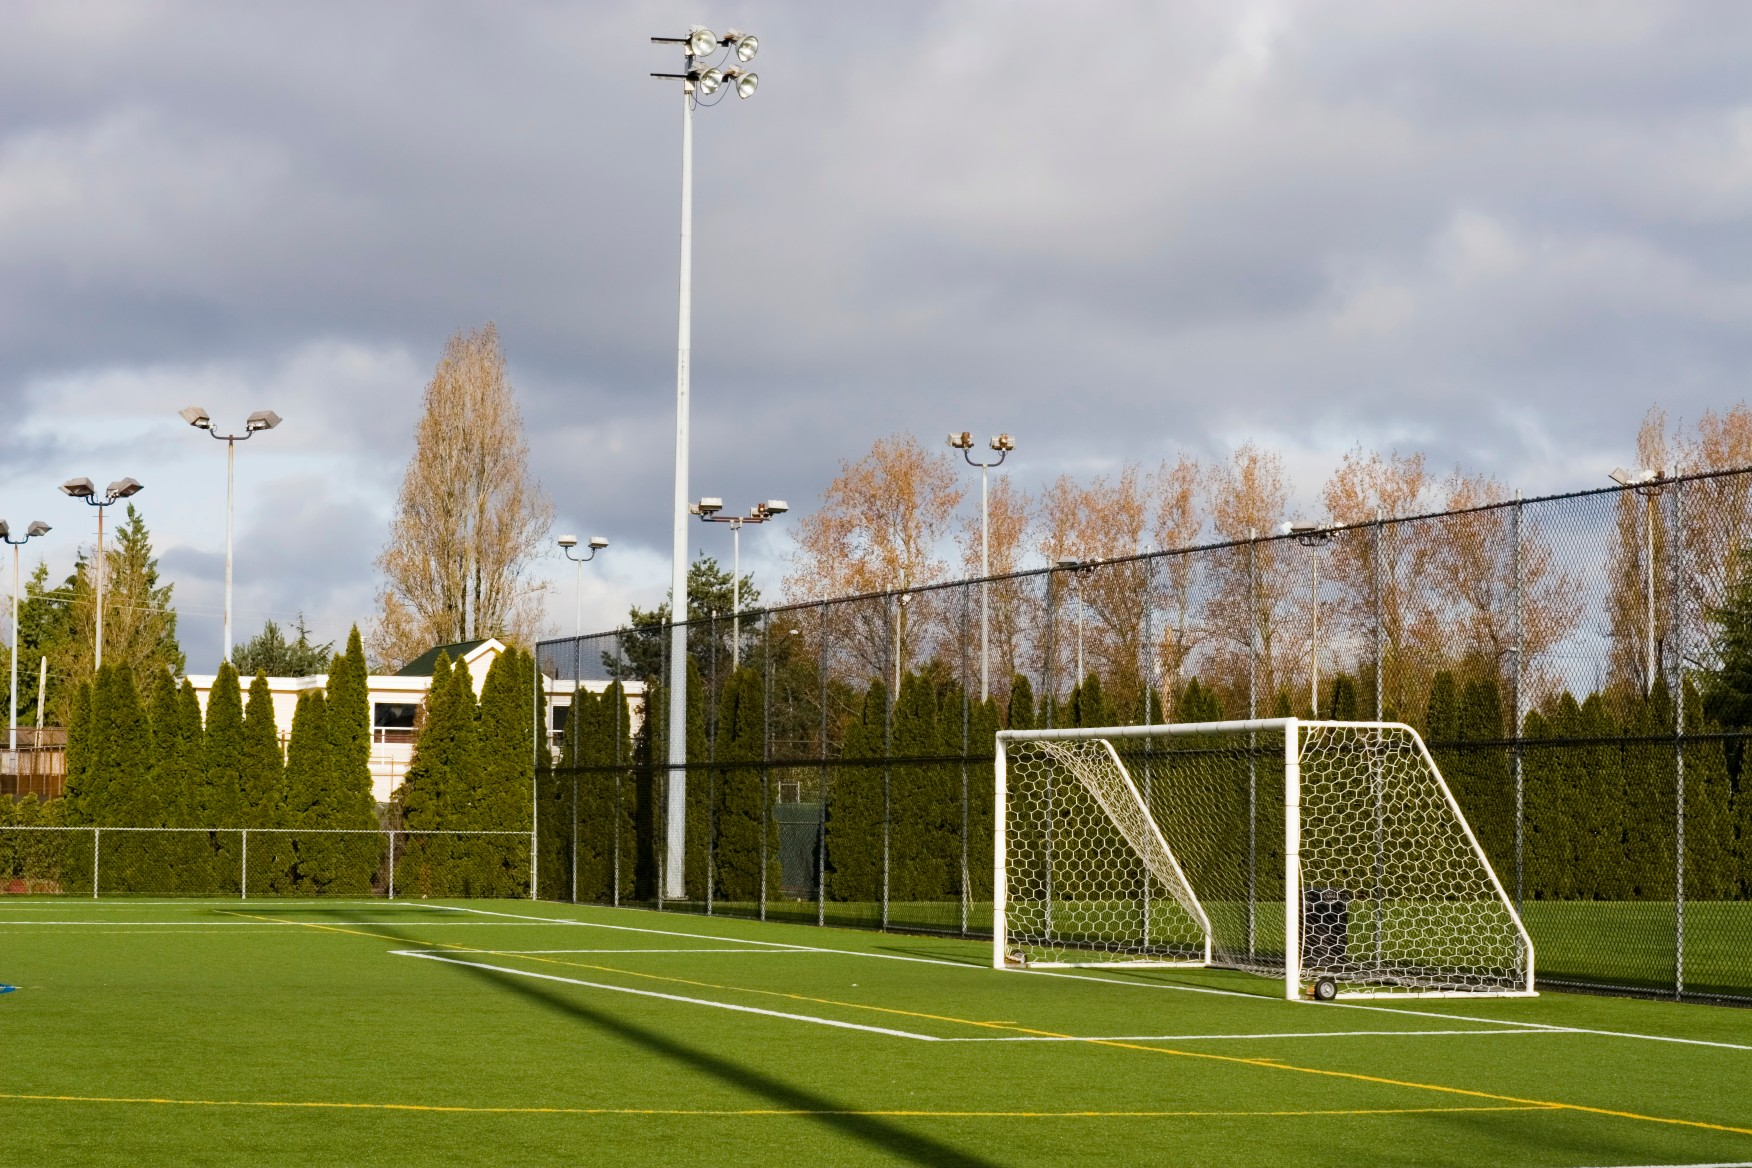 ETC Sports Surfaces are experts in artificial football pitches and finishing equipment.